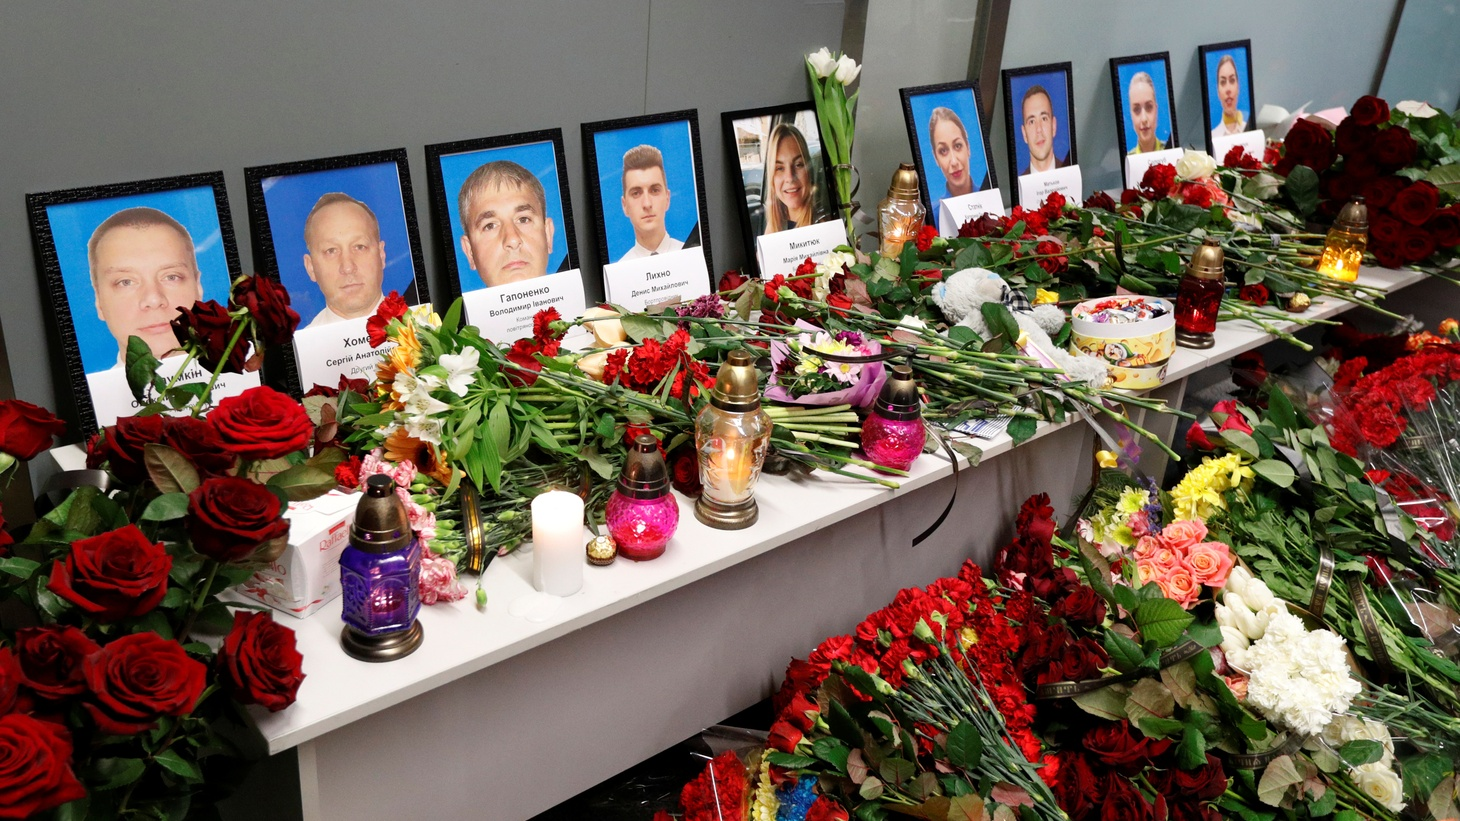 Flowers and candles are placed in front of the portraits of the flight crew members of the Ukraine International Airlines Boeing 737-800 plane that crashed in Iran, at a memorial at the Boryspil International airport outside Kiev, Ukraine. January 8, 2020.